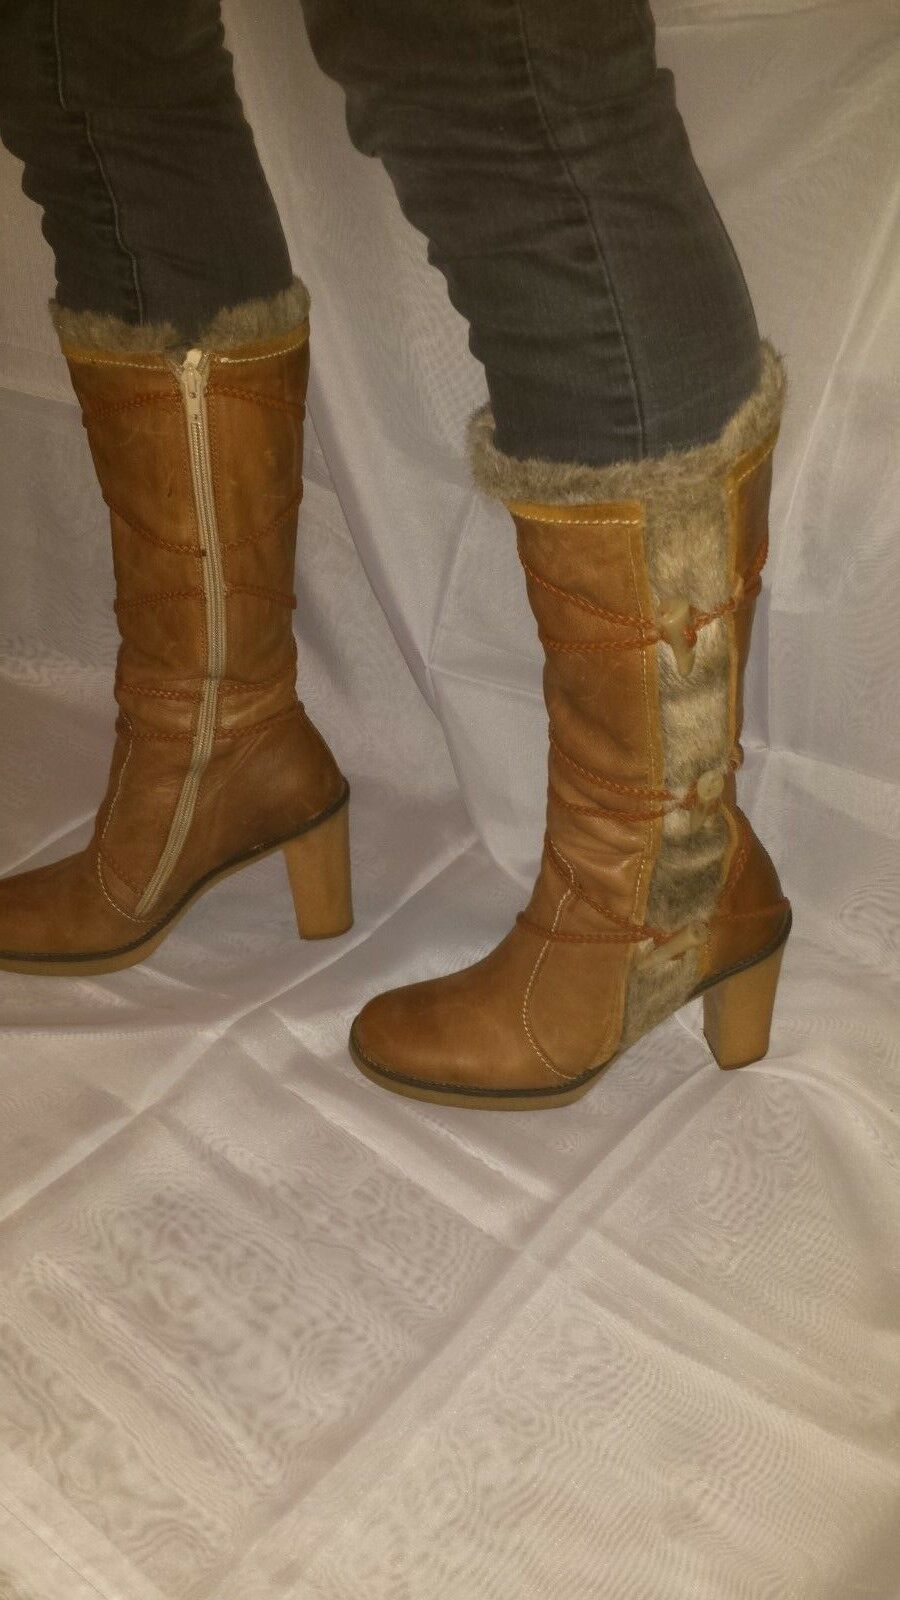 KG by Kurt Geiger Boots. Tan leather and faux fur. Size 7.